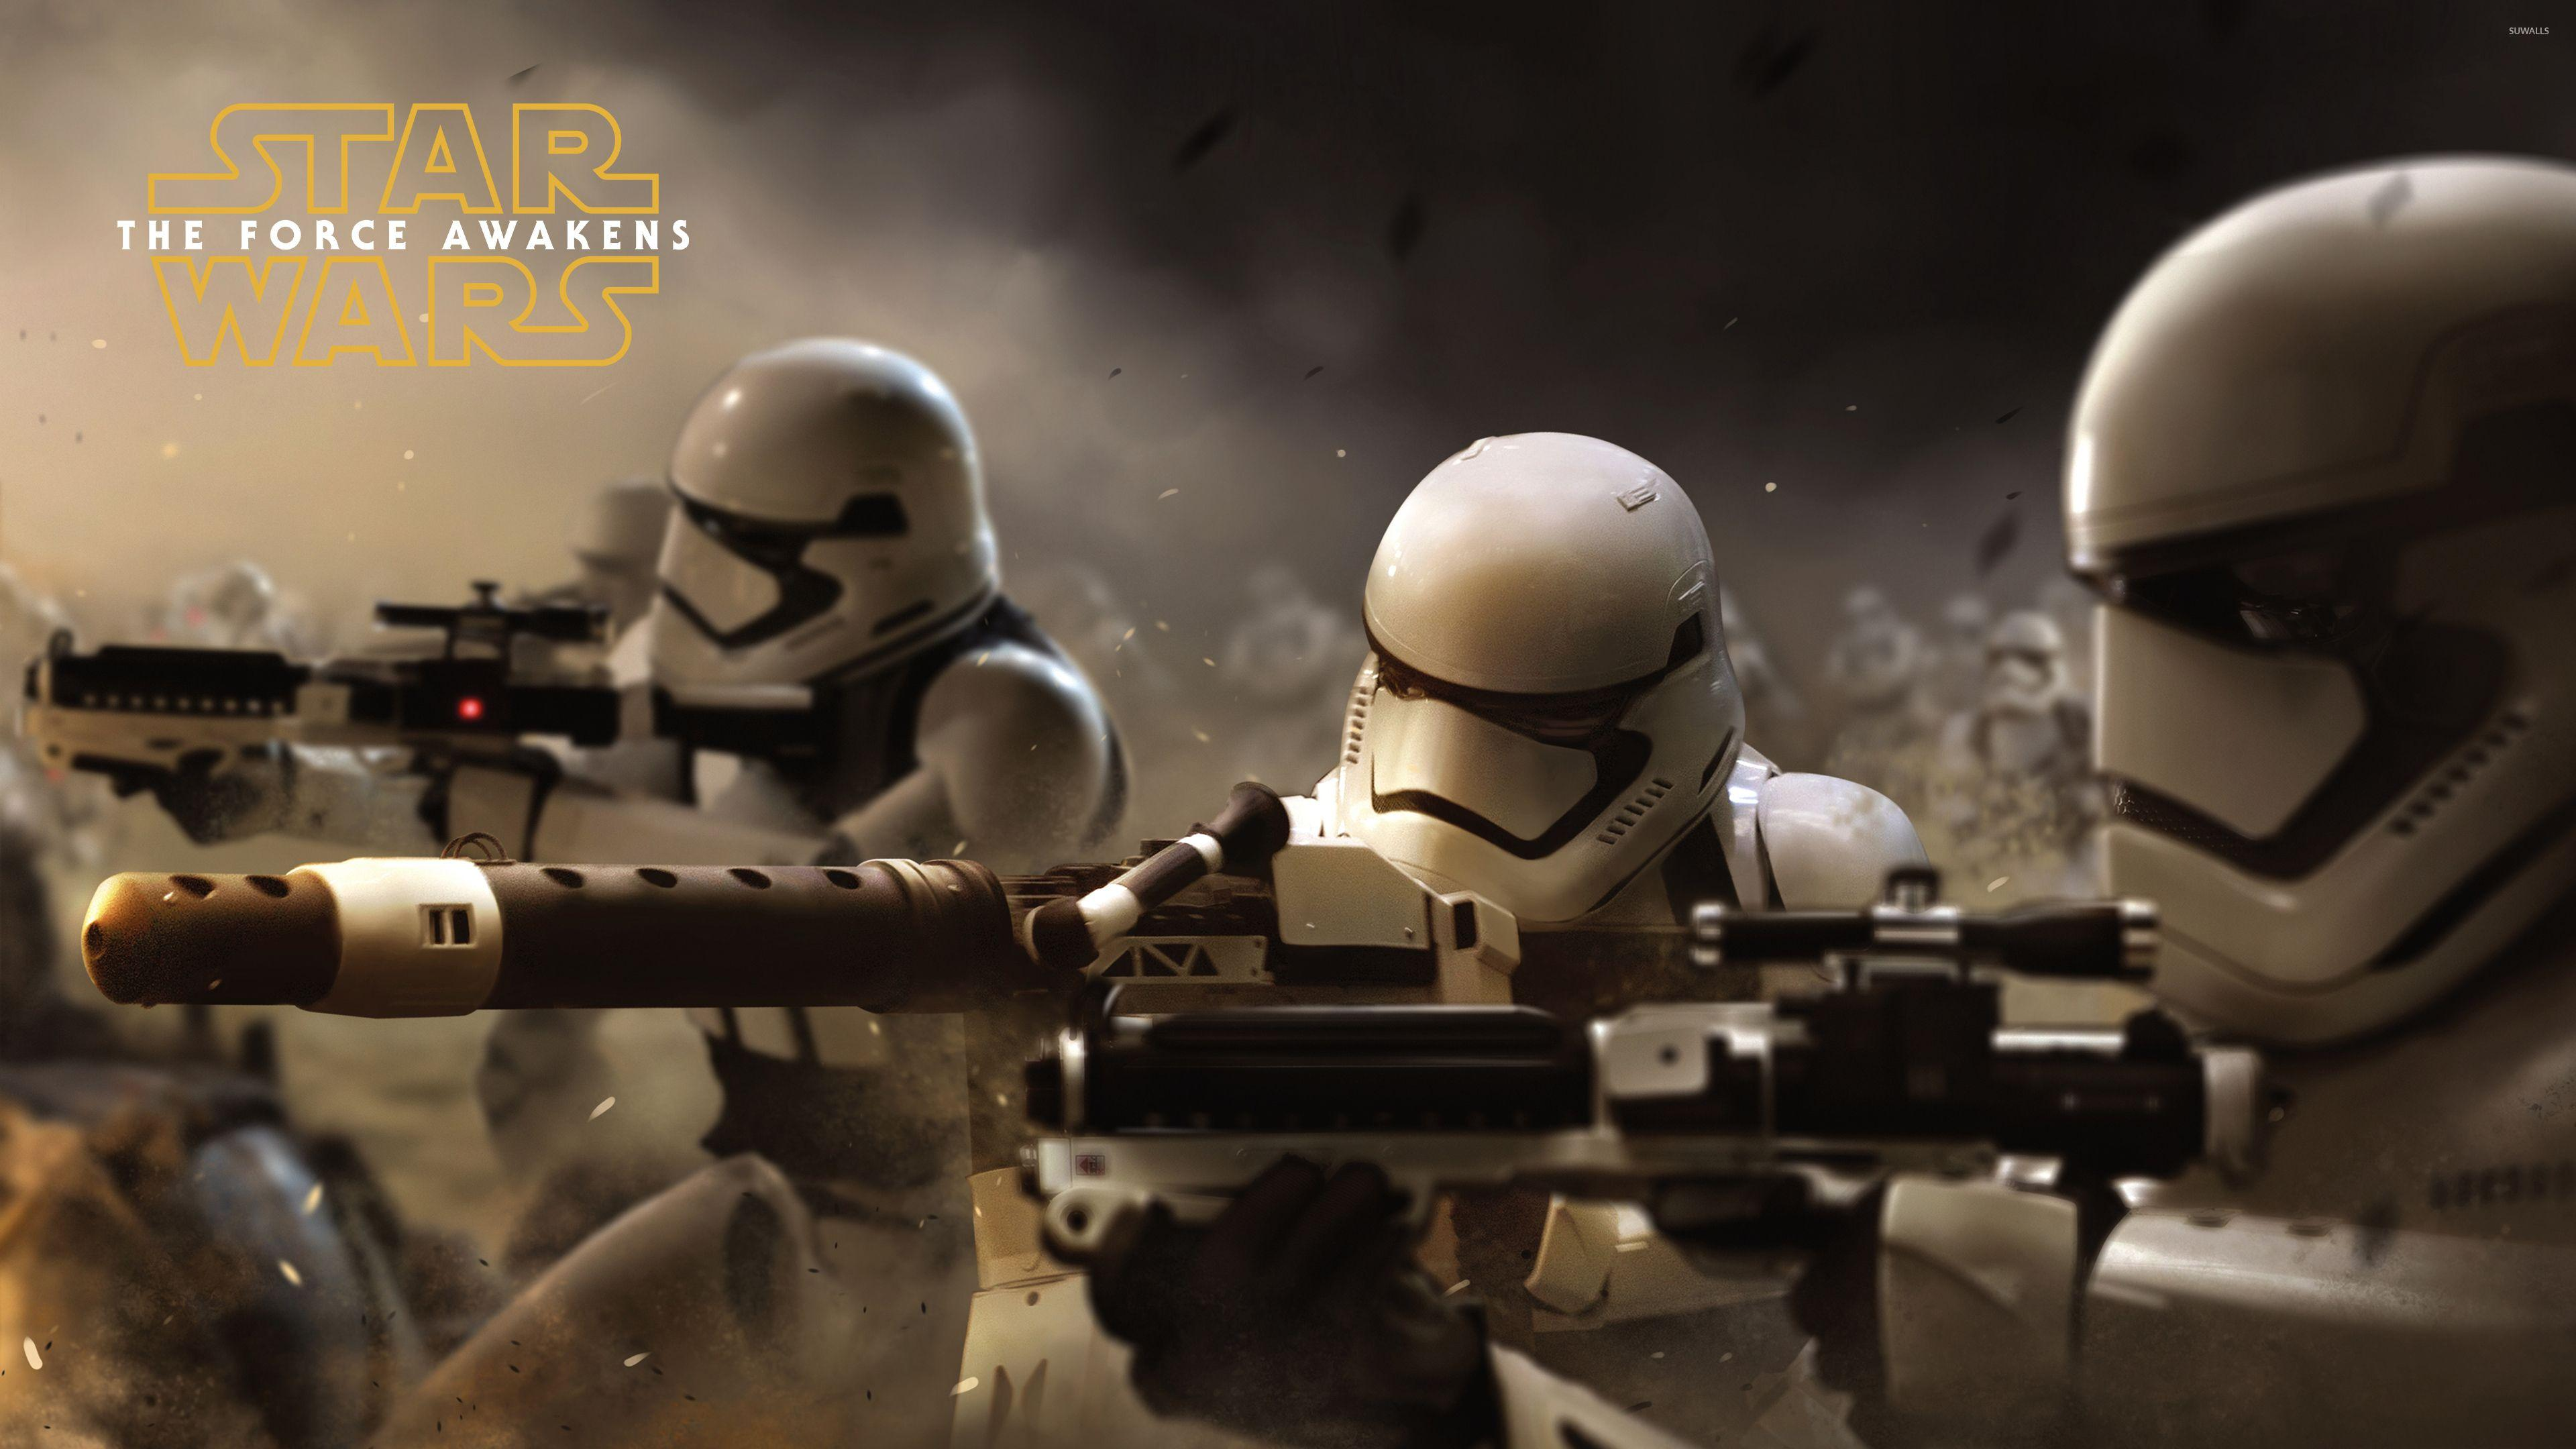 Stormtroopers in Star Wars: The Force Awakens wallpaper - Movie ...